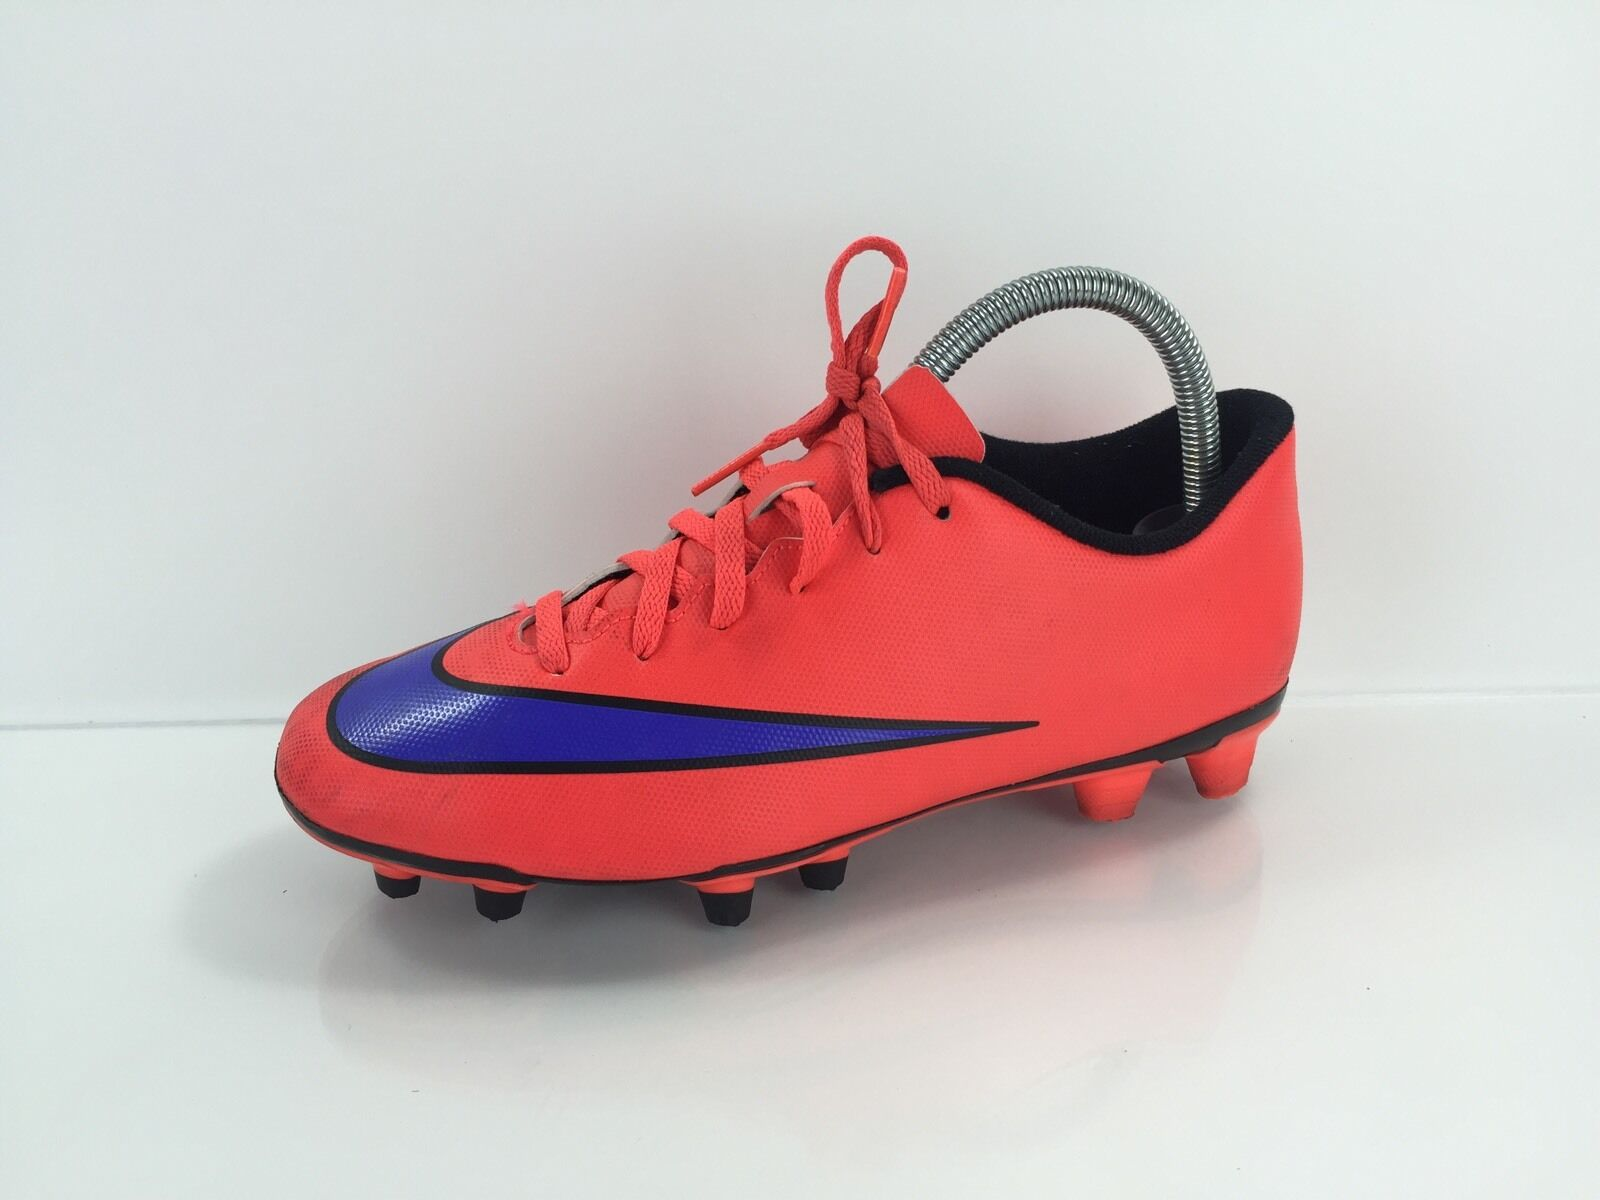 New shoes for men and women, limited time discount Nike Mercurial Mens Red Cleats 7